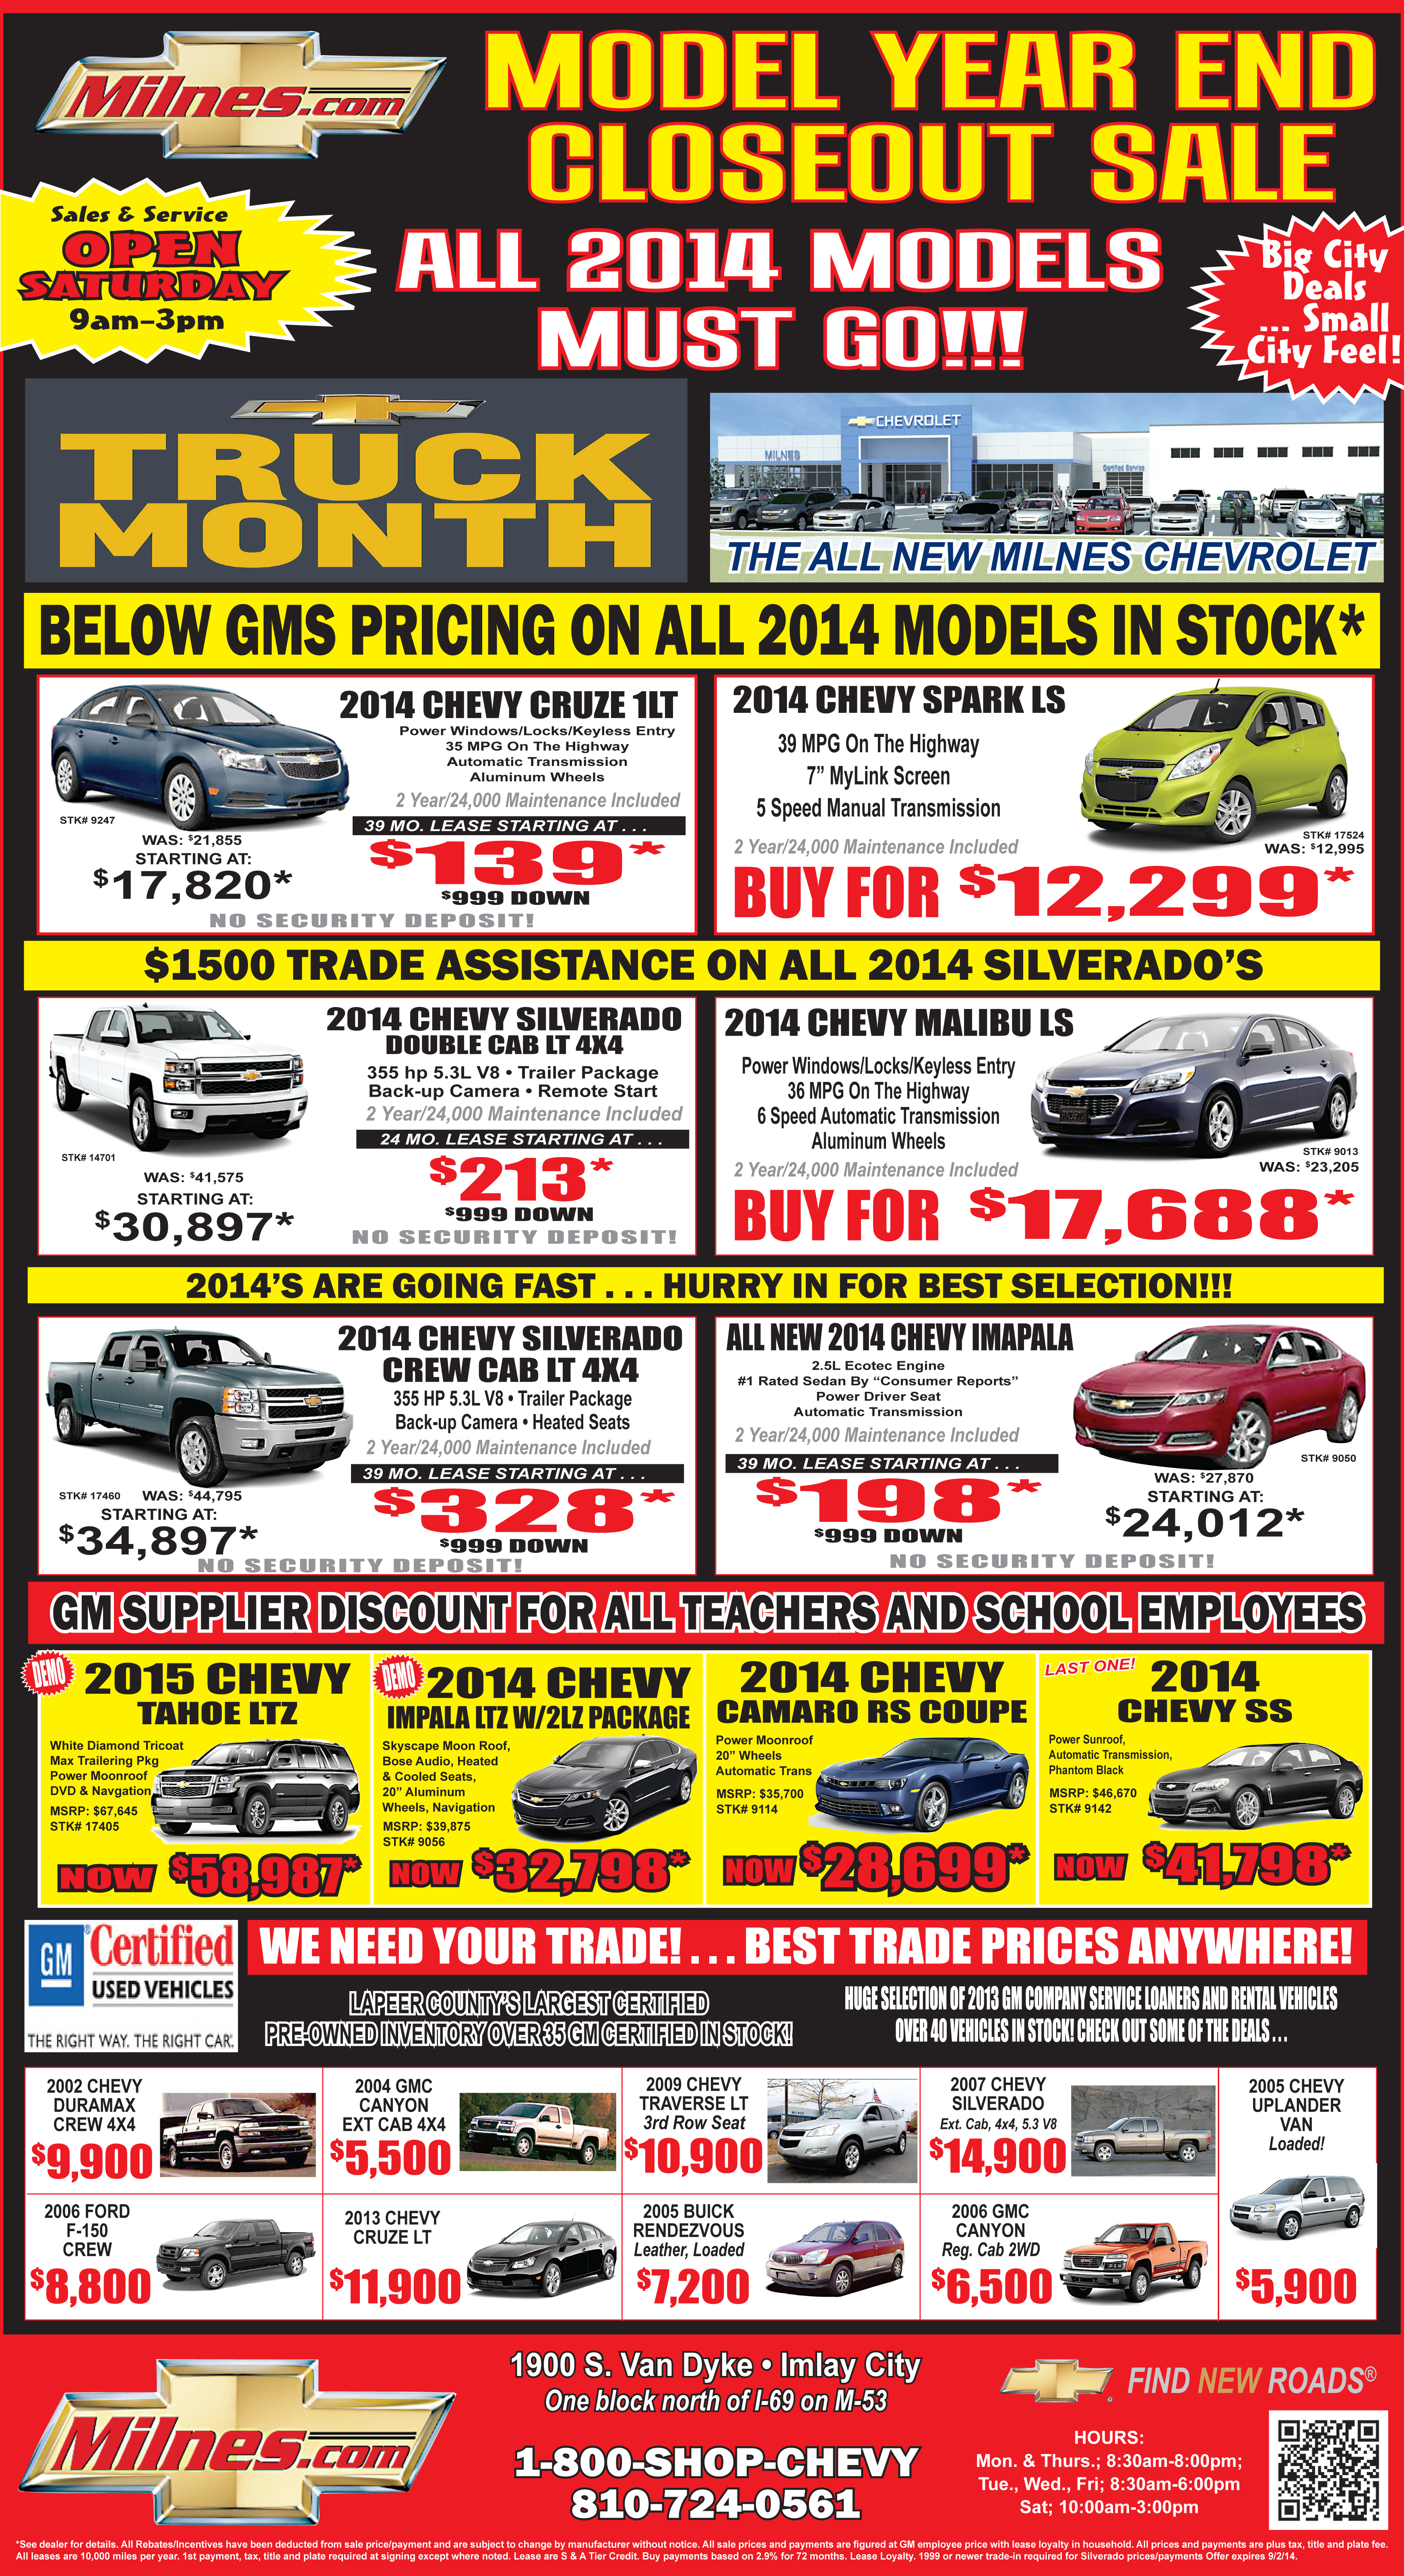 Awesome Deals!